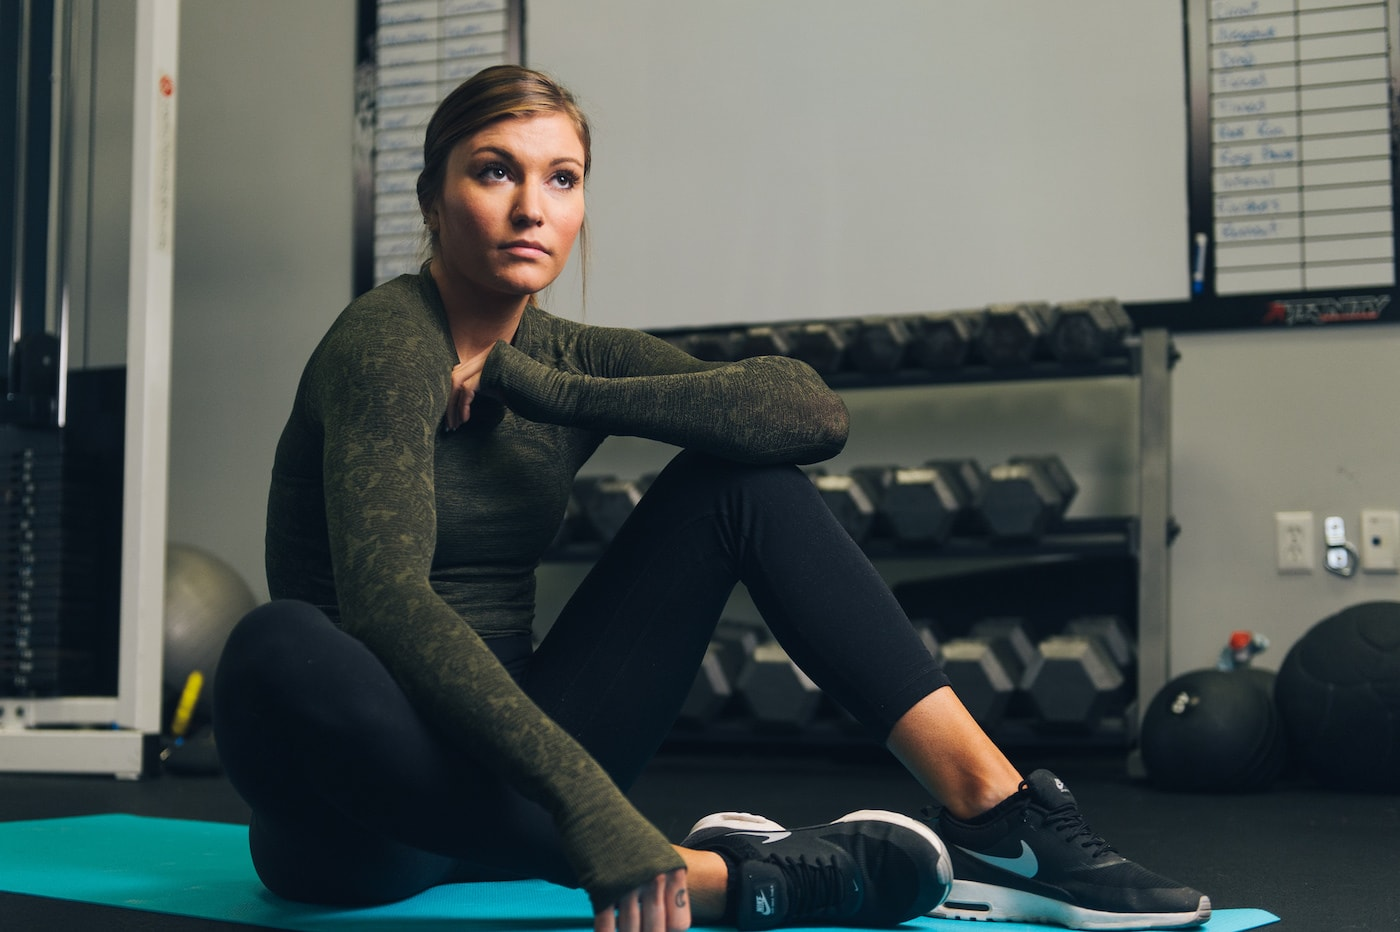 Whats the difference between crunches and situps? - CC thorouglyreviewed.com